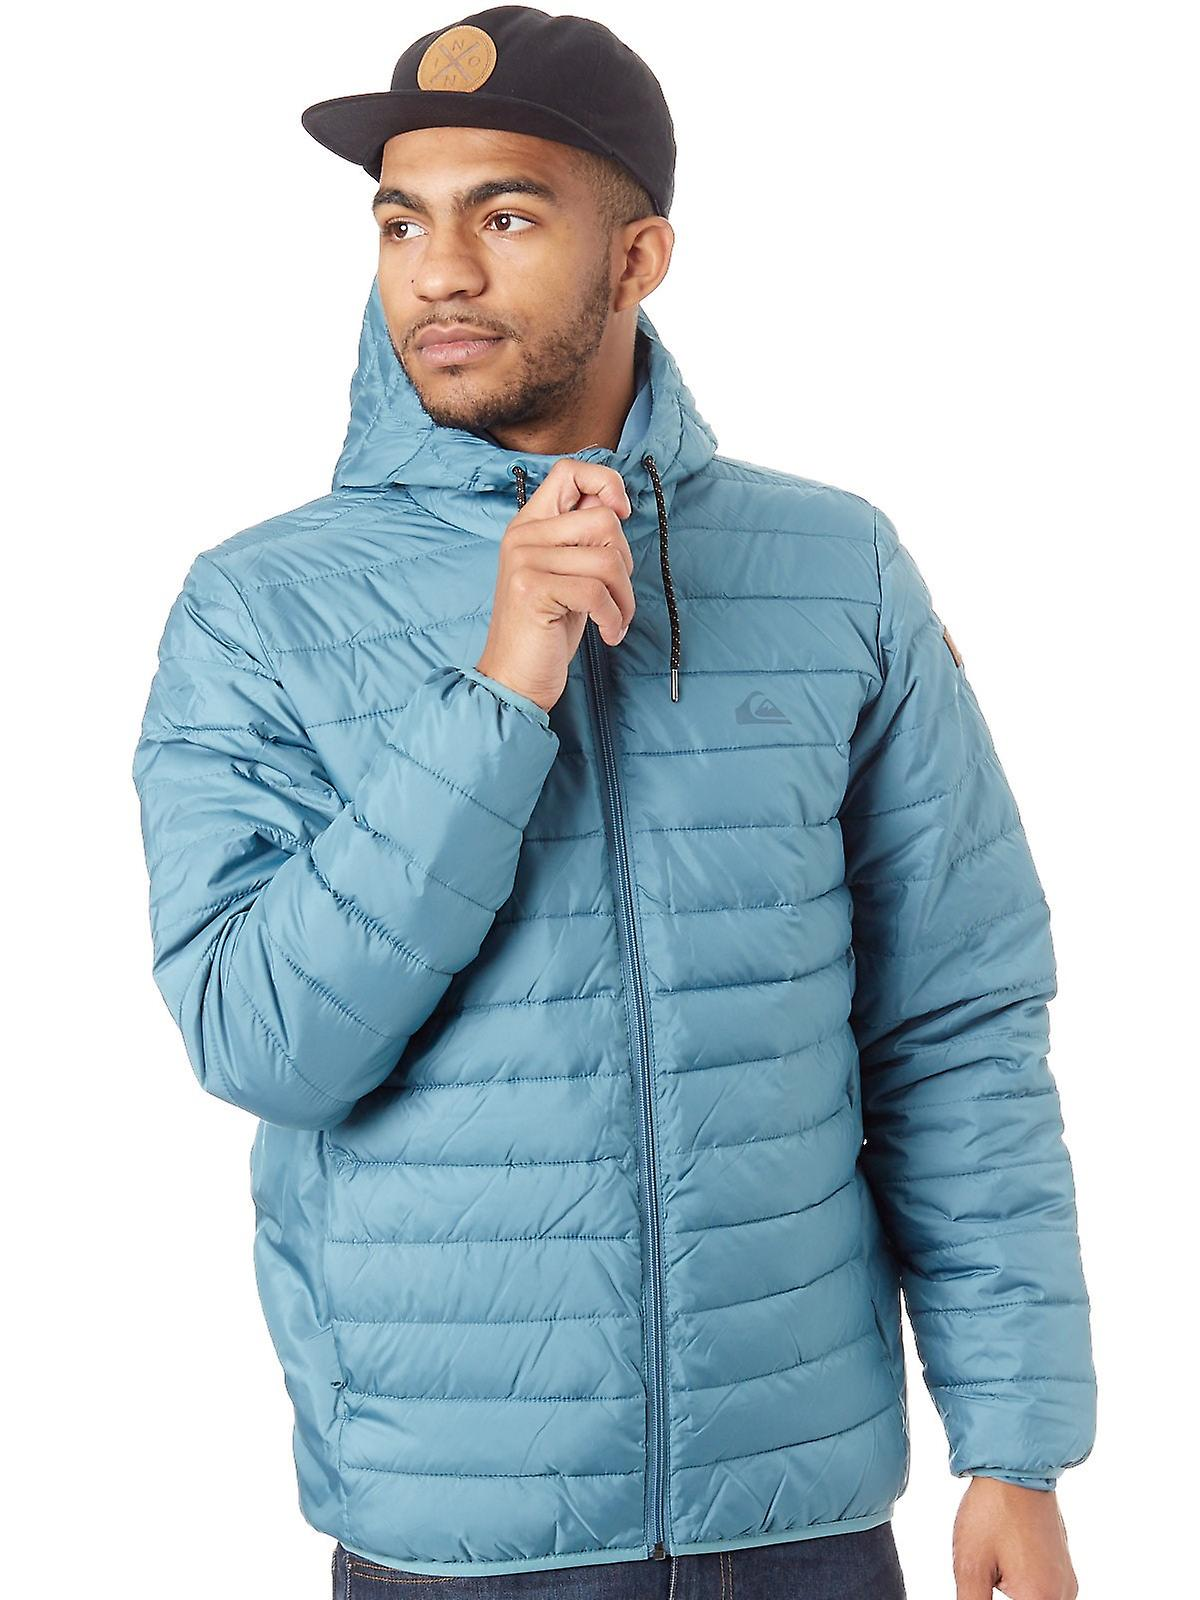 ad261b81b4907 Quiksilver Tapestry Scaly Jacket